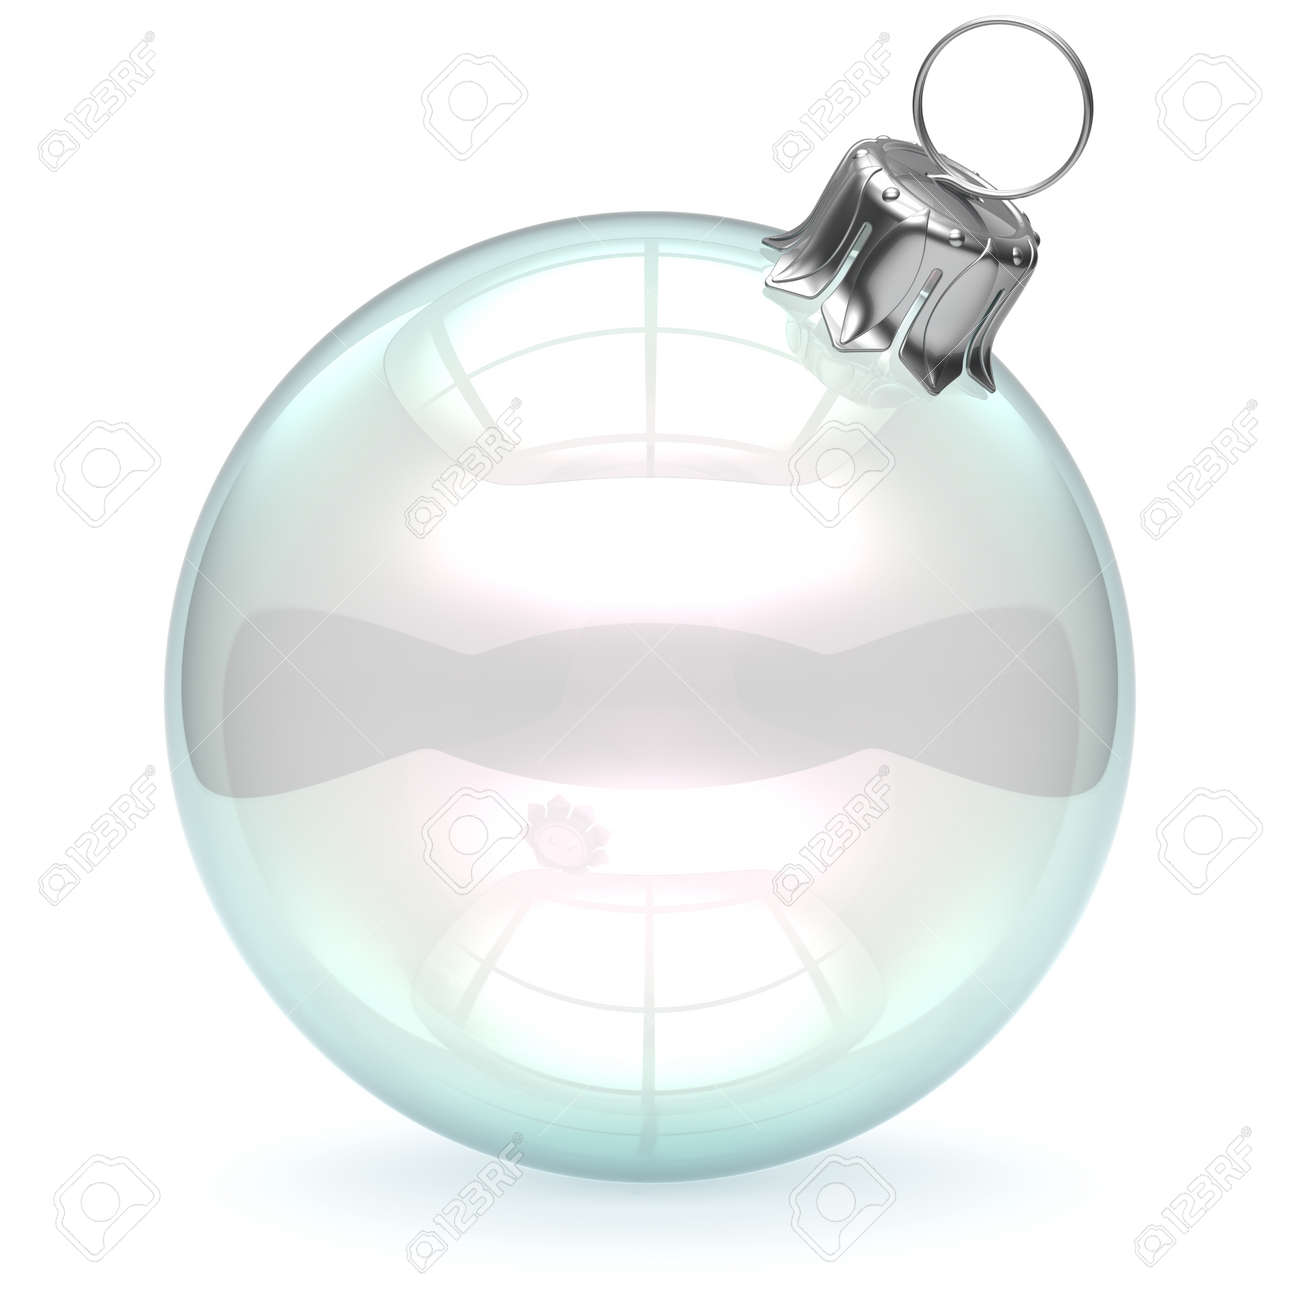 Clear glass ball ornaments - Glass Christmas Ball Empty Adornment Bauble Clear Blank New Year S Eve Ornament Translucent Decoration Shiny Polished